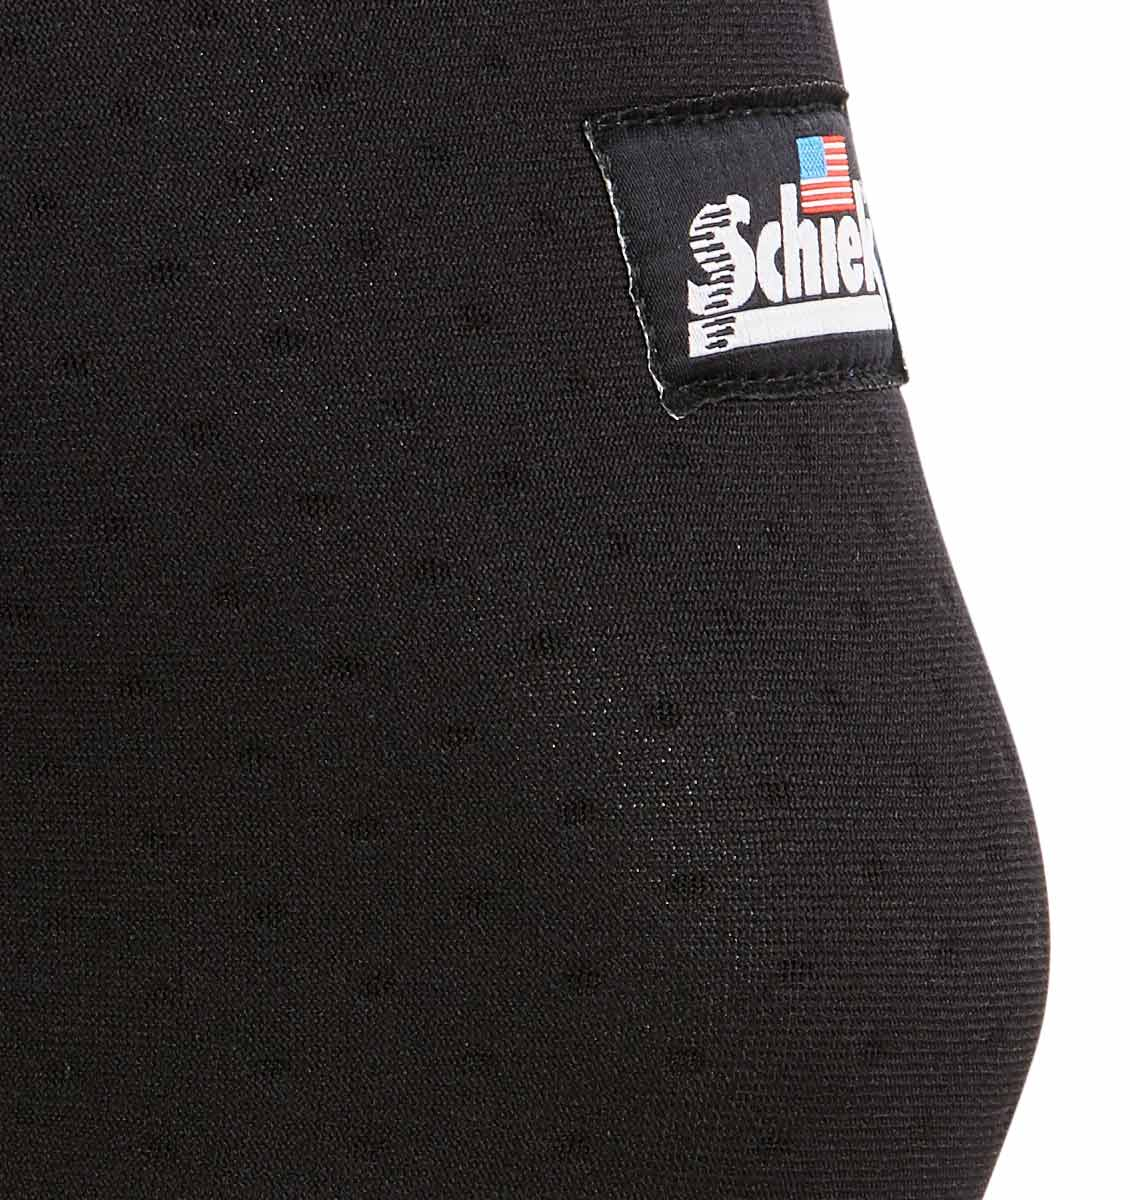 1150KS Schiek Knee Sleeves Side Close Up